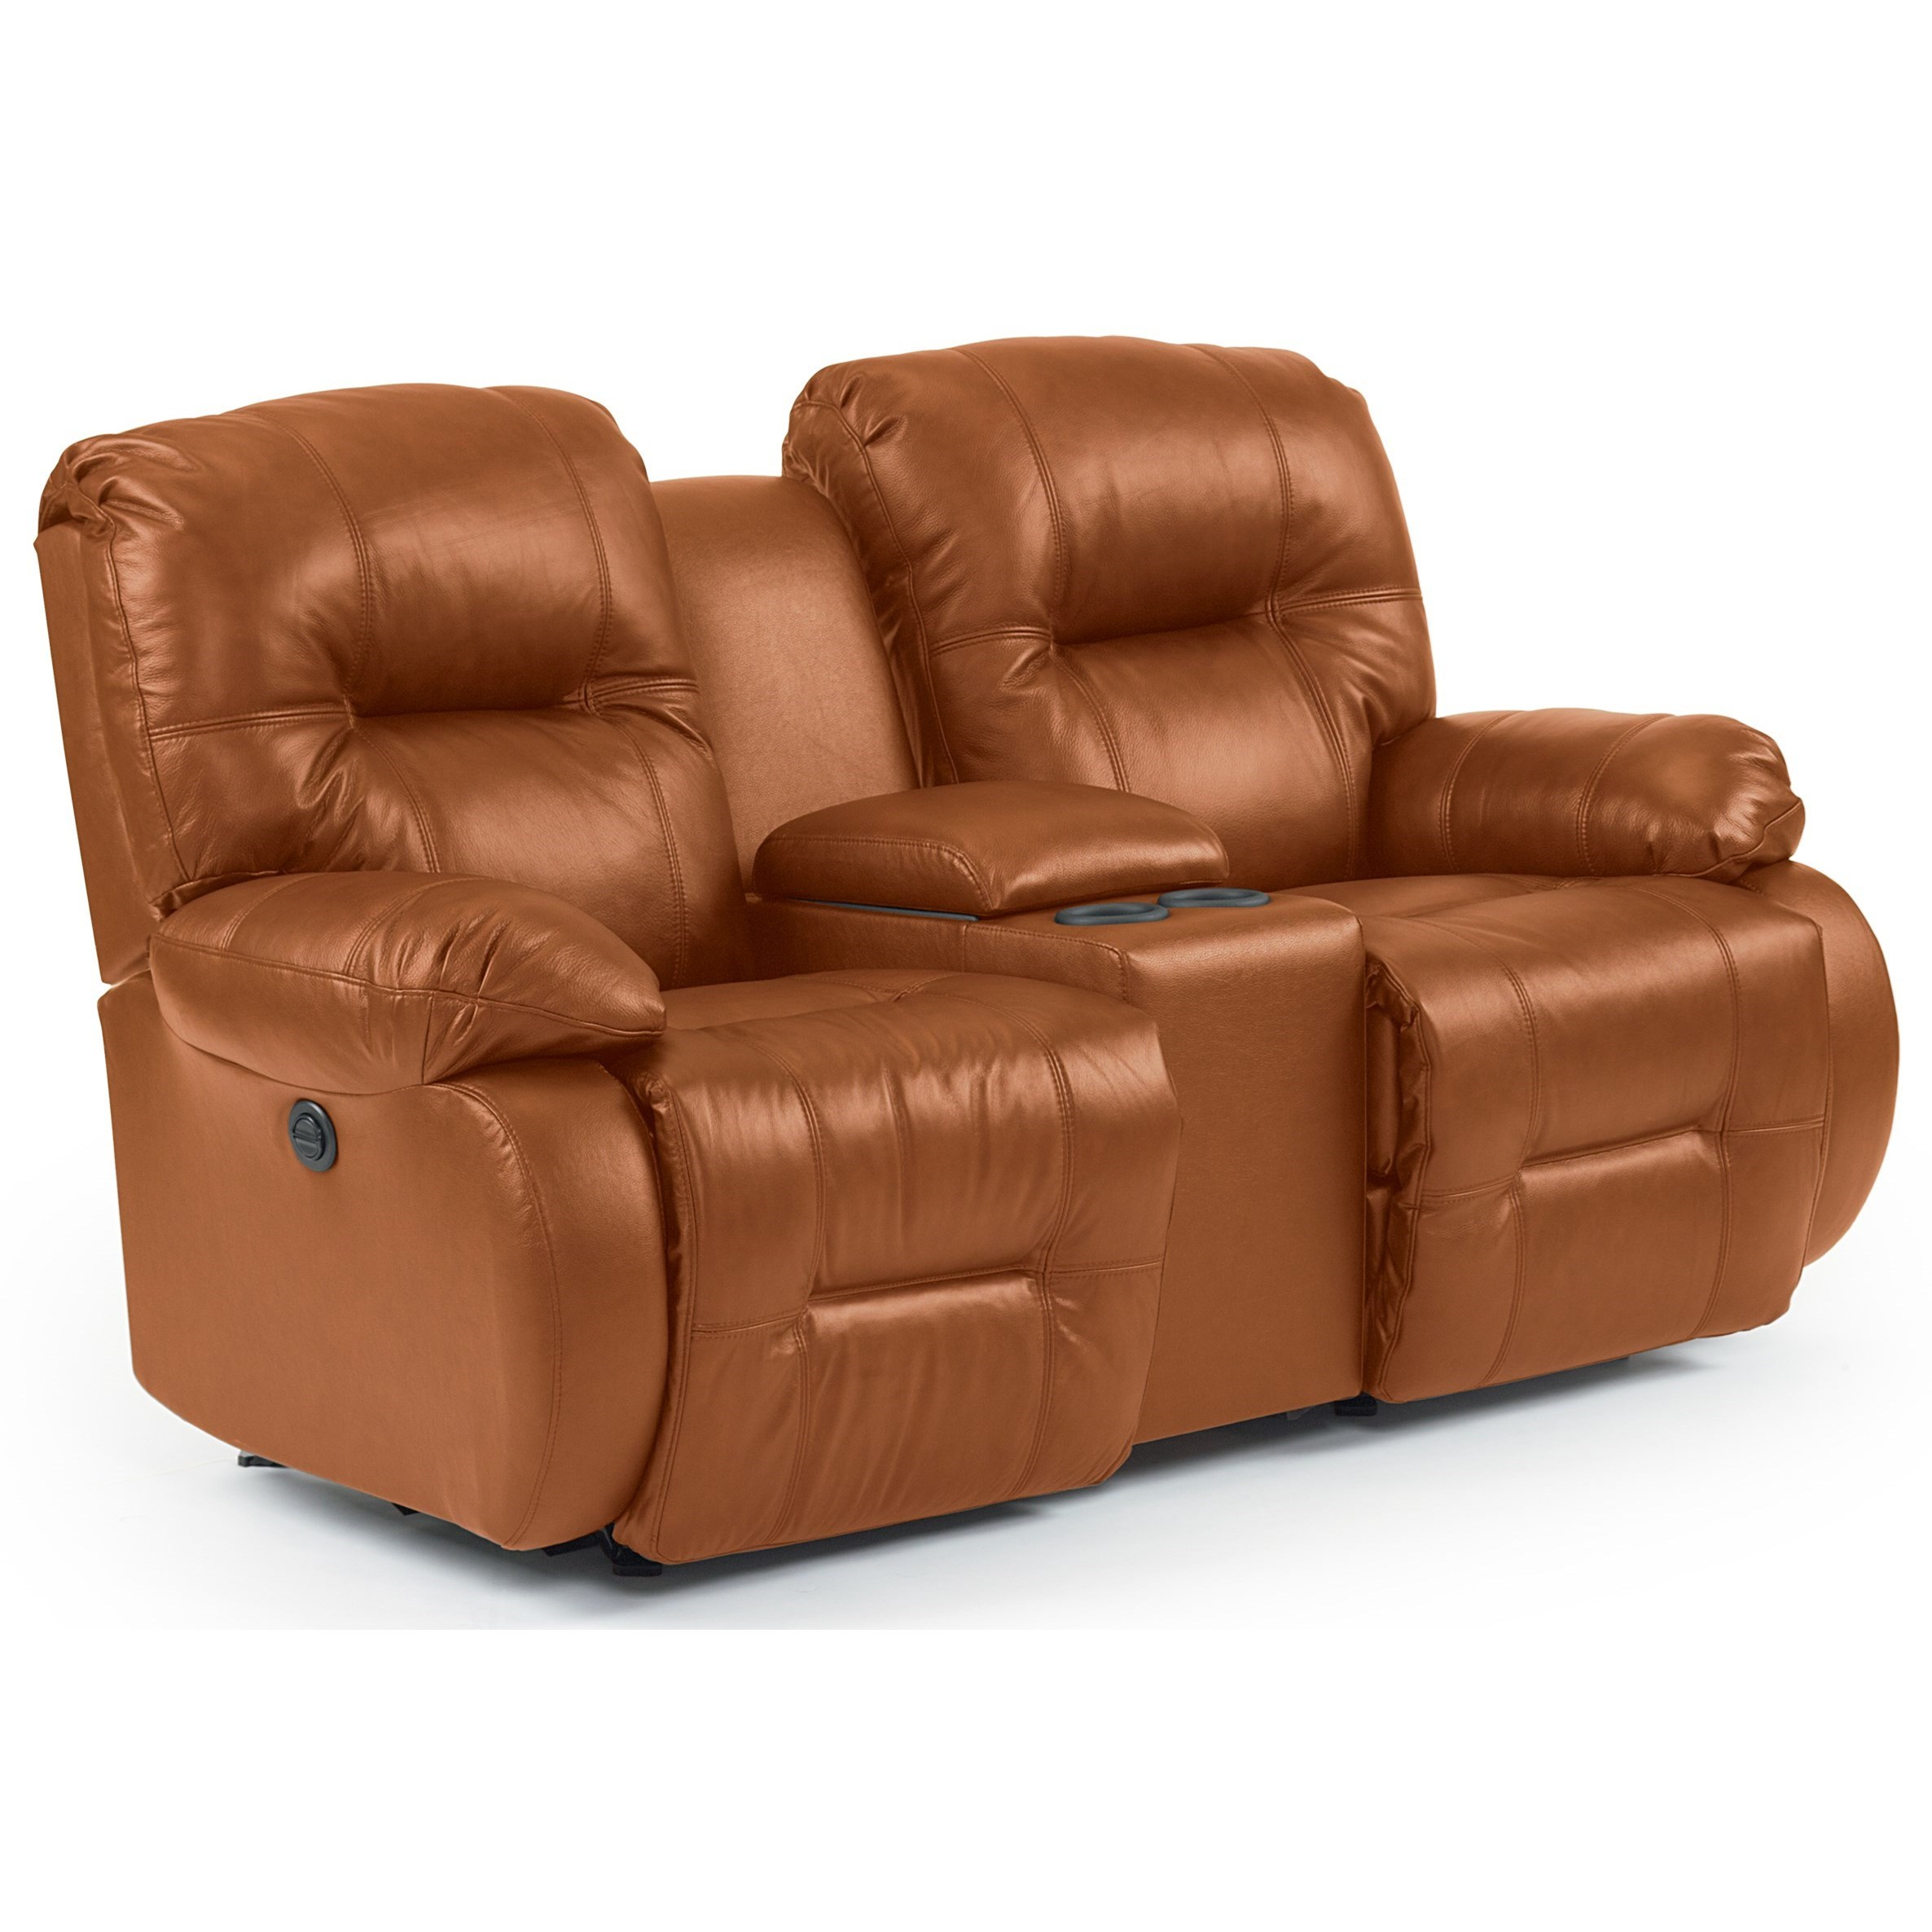 of boy recliners best ncer lazy detail loveseat sofa